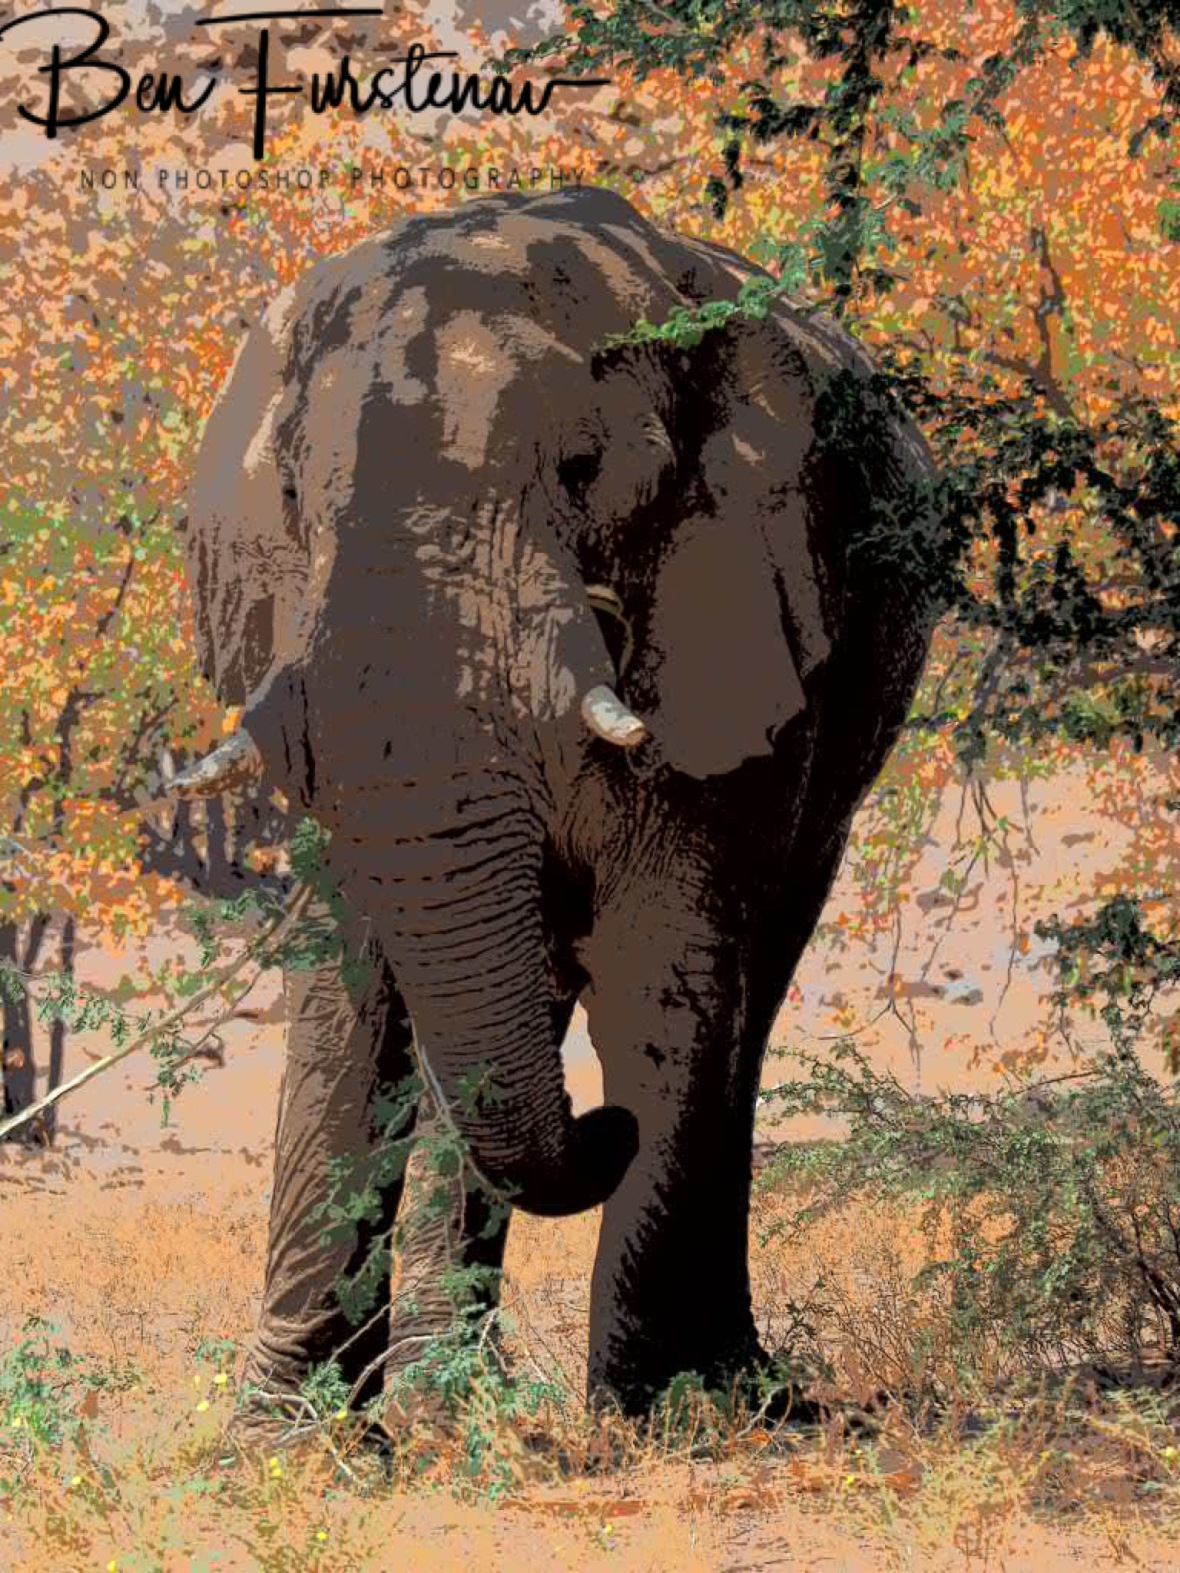 Last view on my favourite gentle giants, Damaraland, Namibia